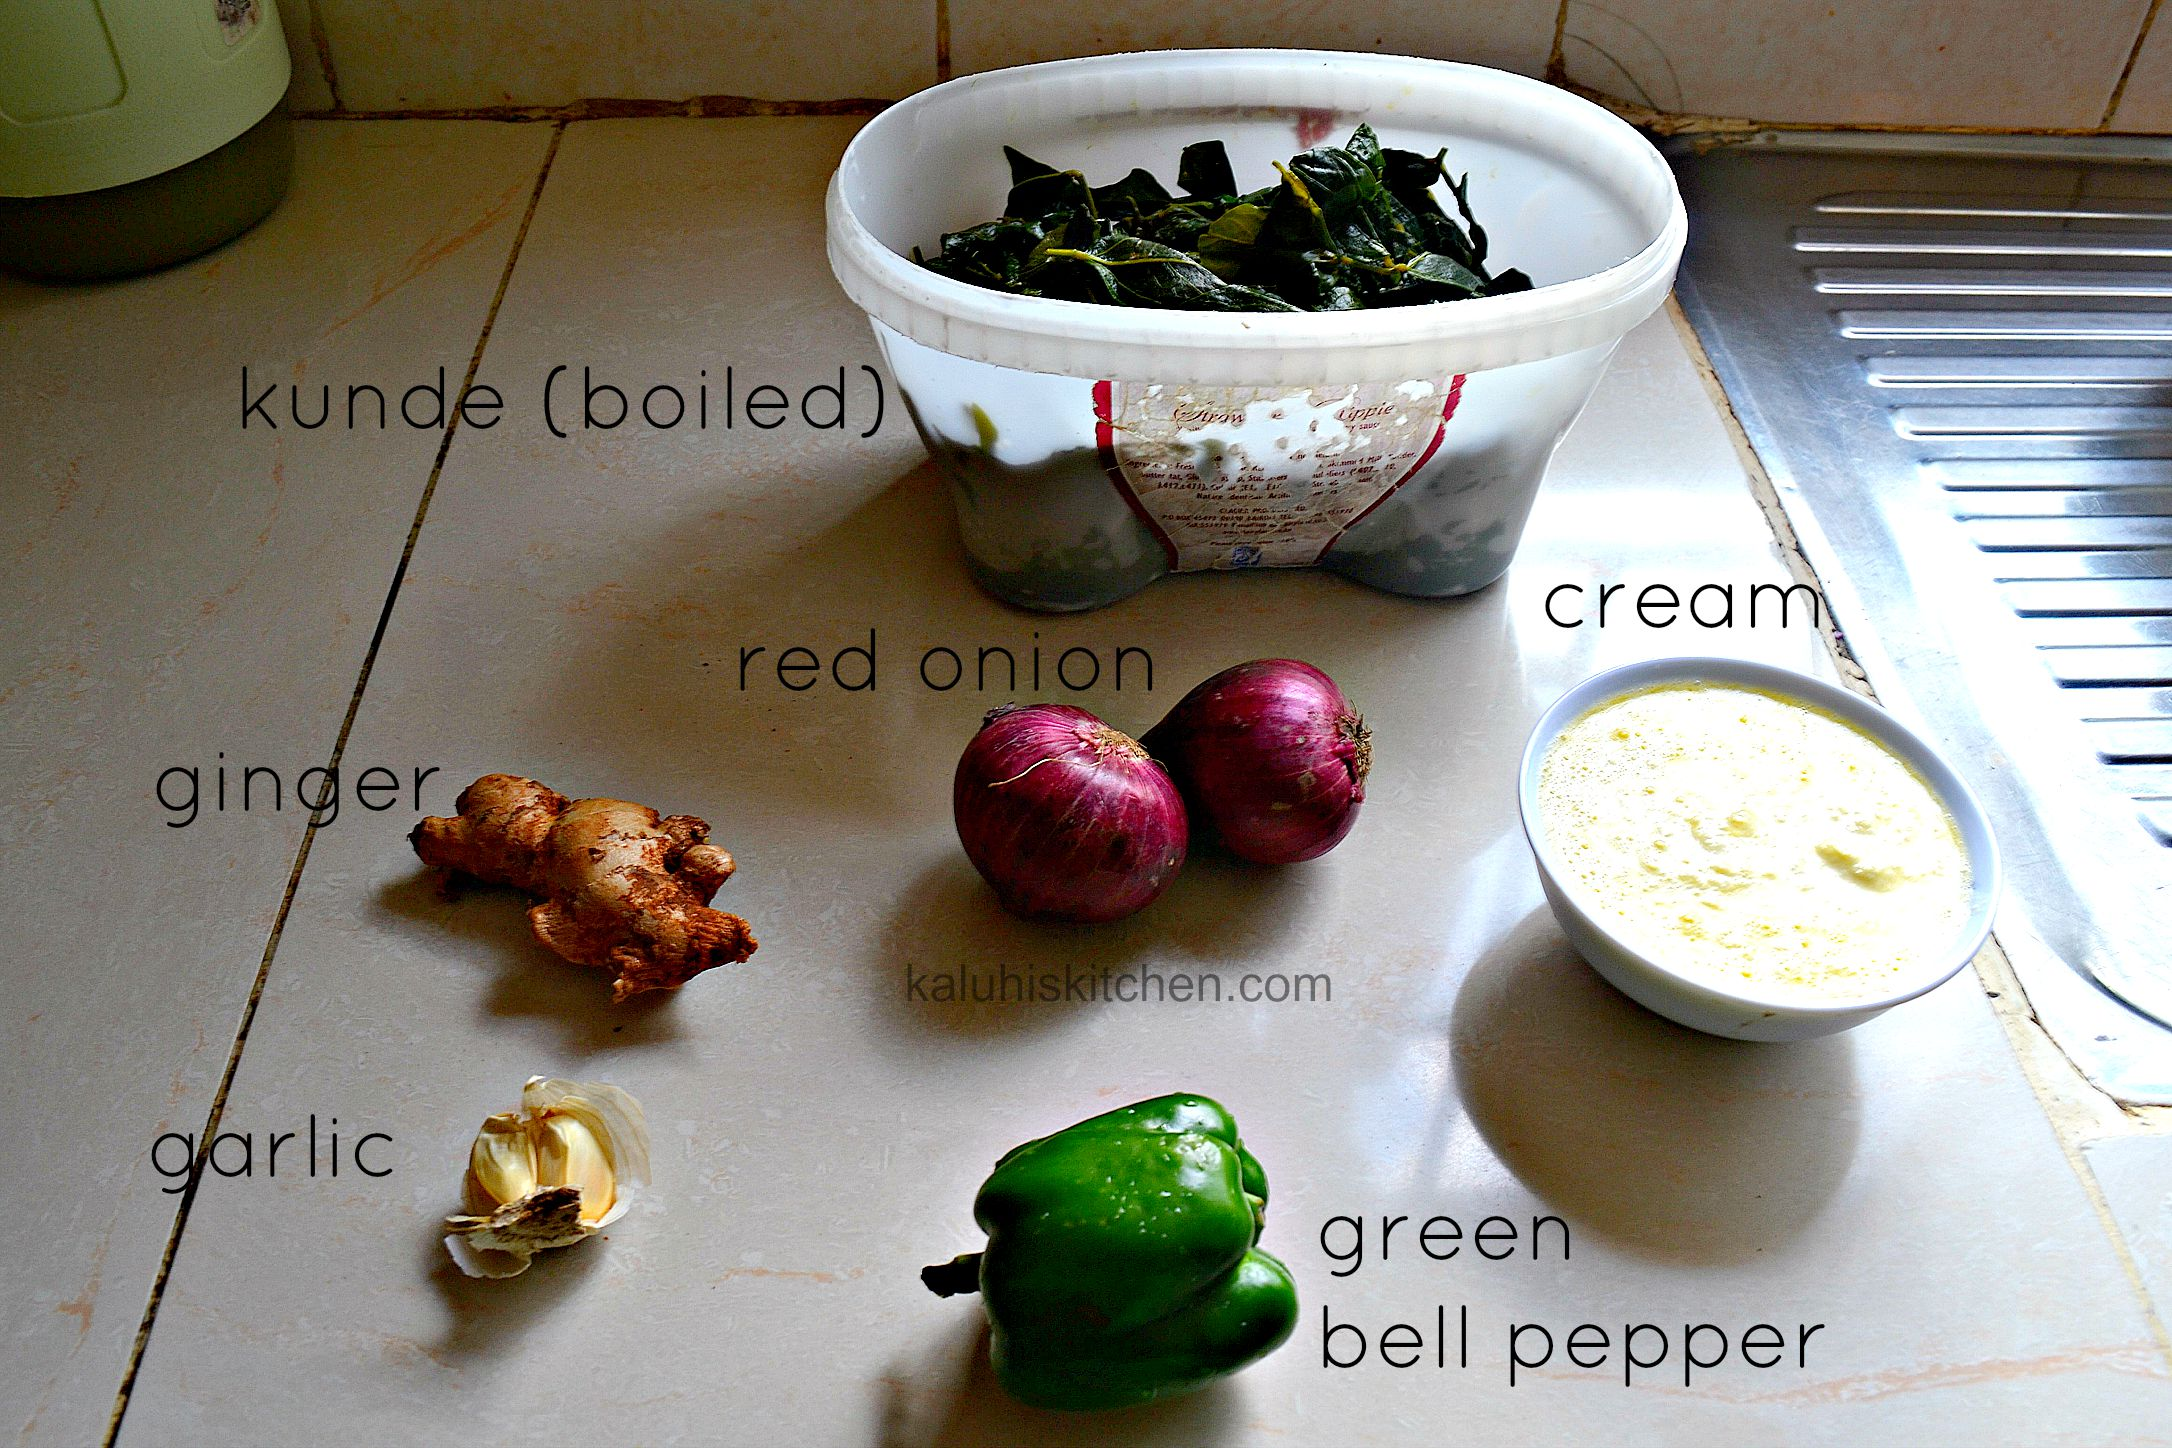 ingredients for cooking kunde_how to make kunde_kenyan food_kaluhiskitchen.com